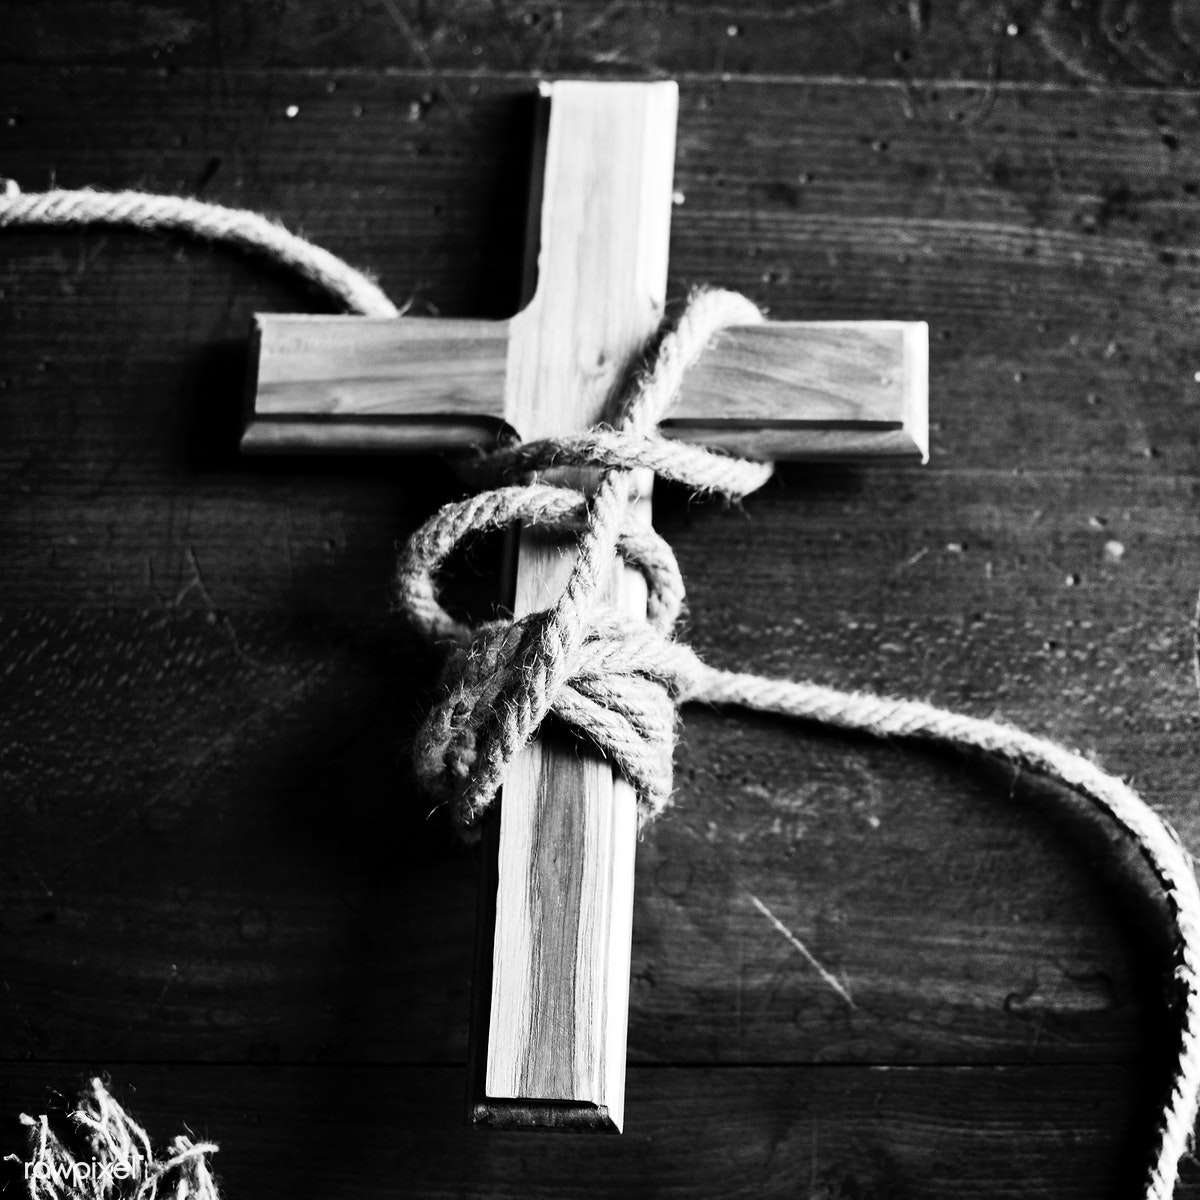 Download premium image about christian, church and cross 50562